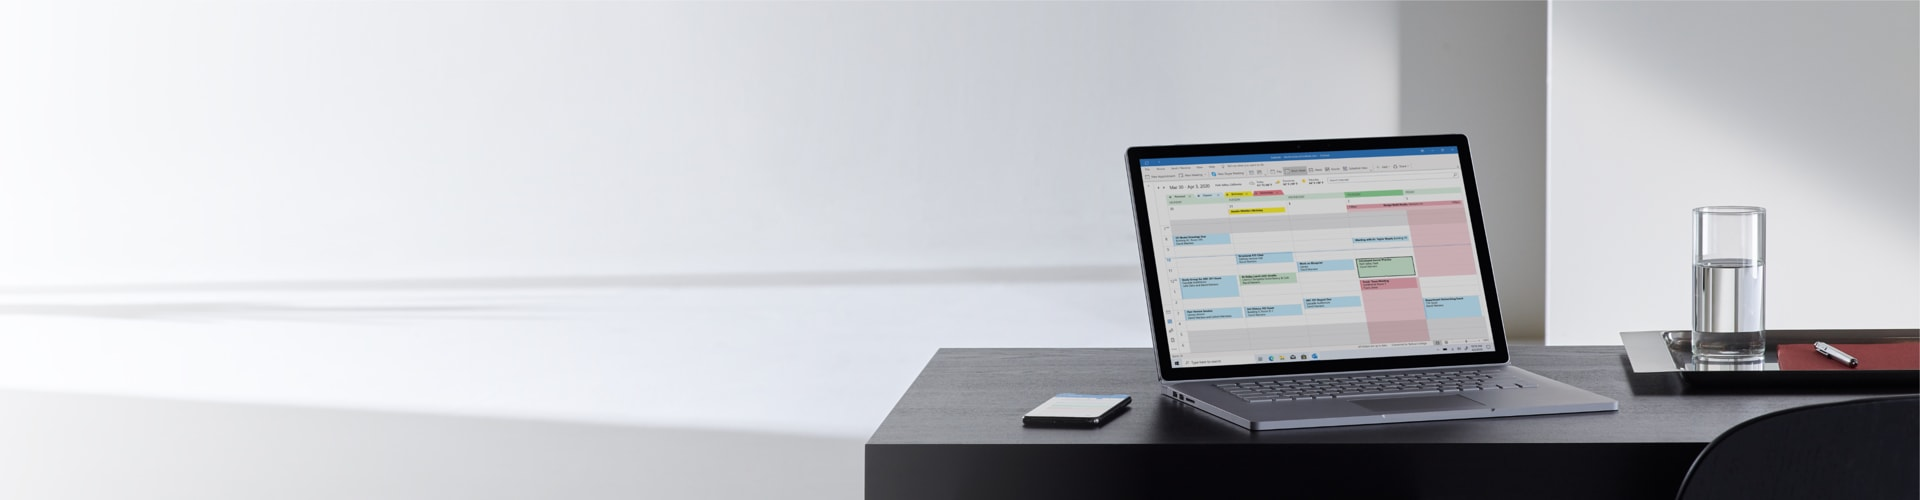 An open laptop sitting on an office desk with a mobile phone next to it. The laptop screen displays an Outlook calendar.